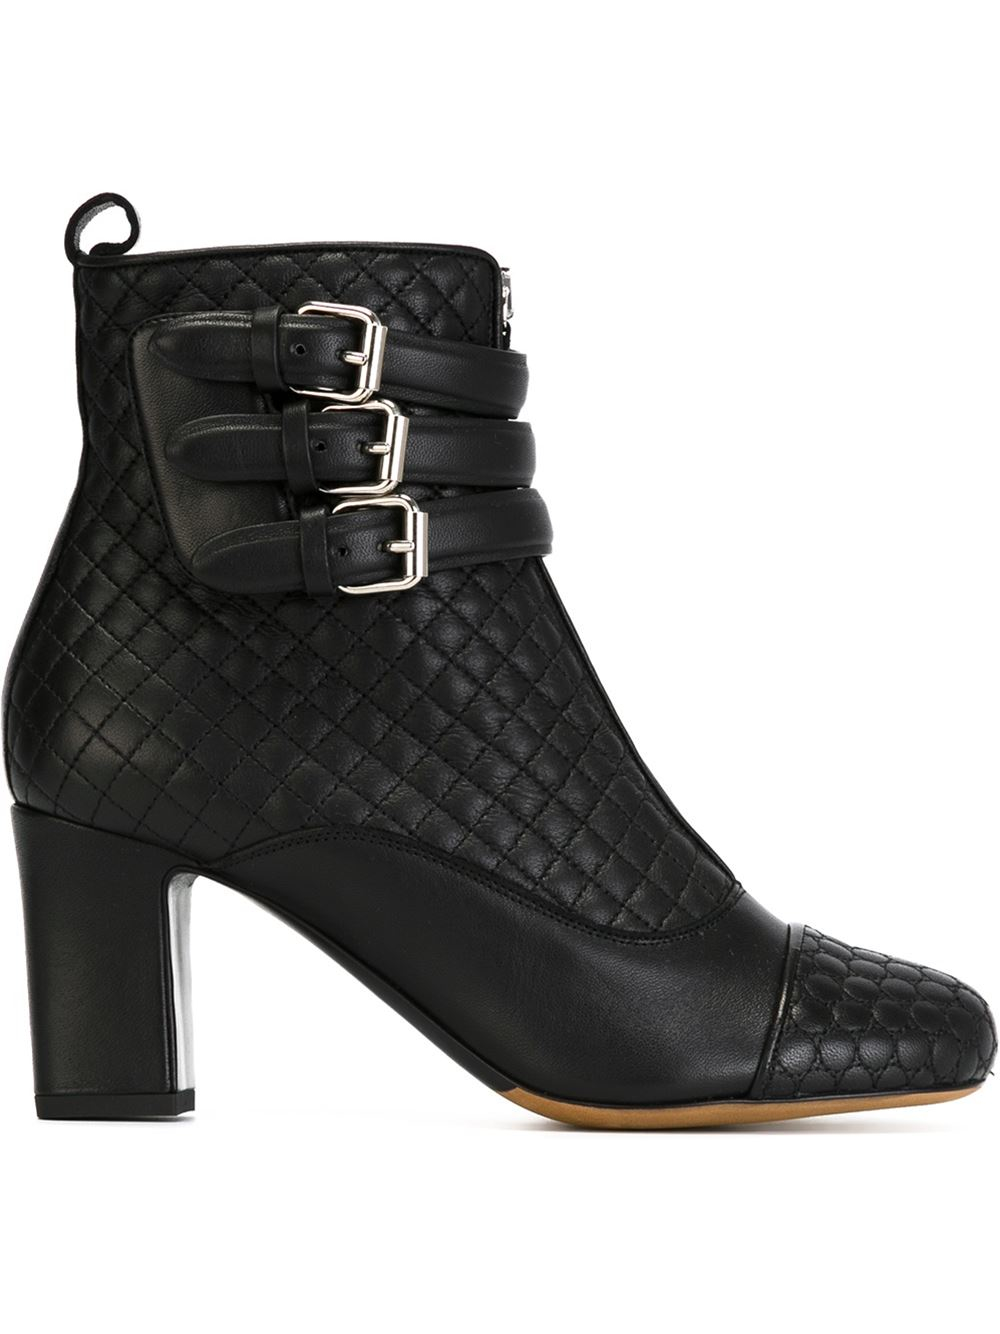 simmons quilted buckle boots in black lyst